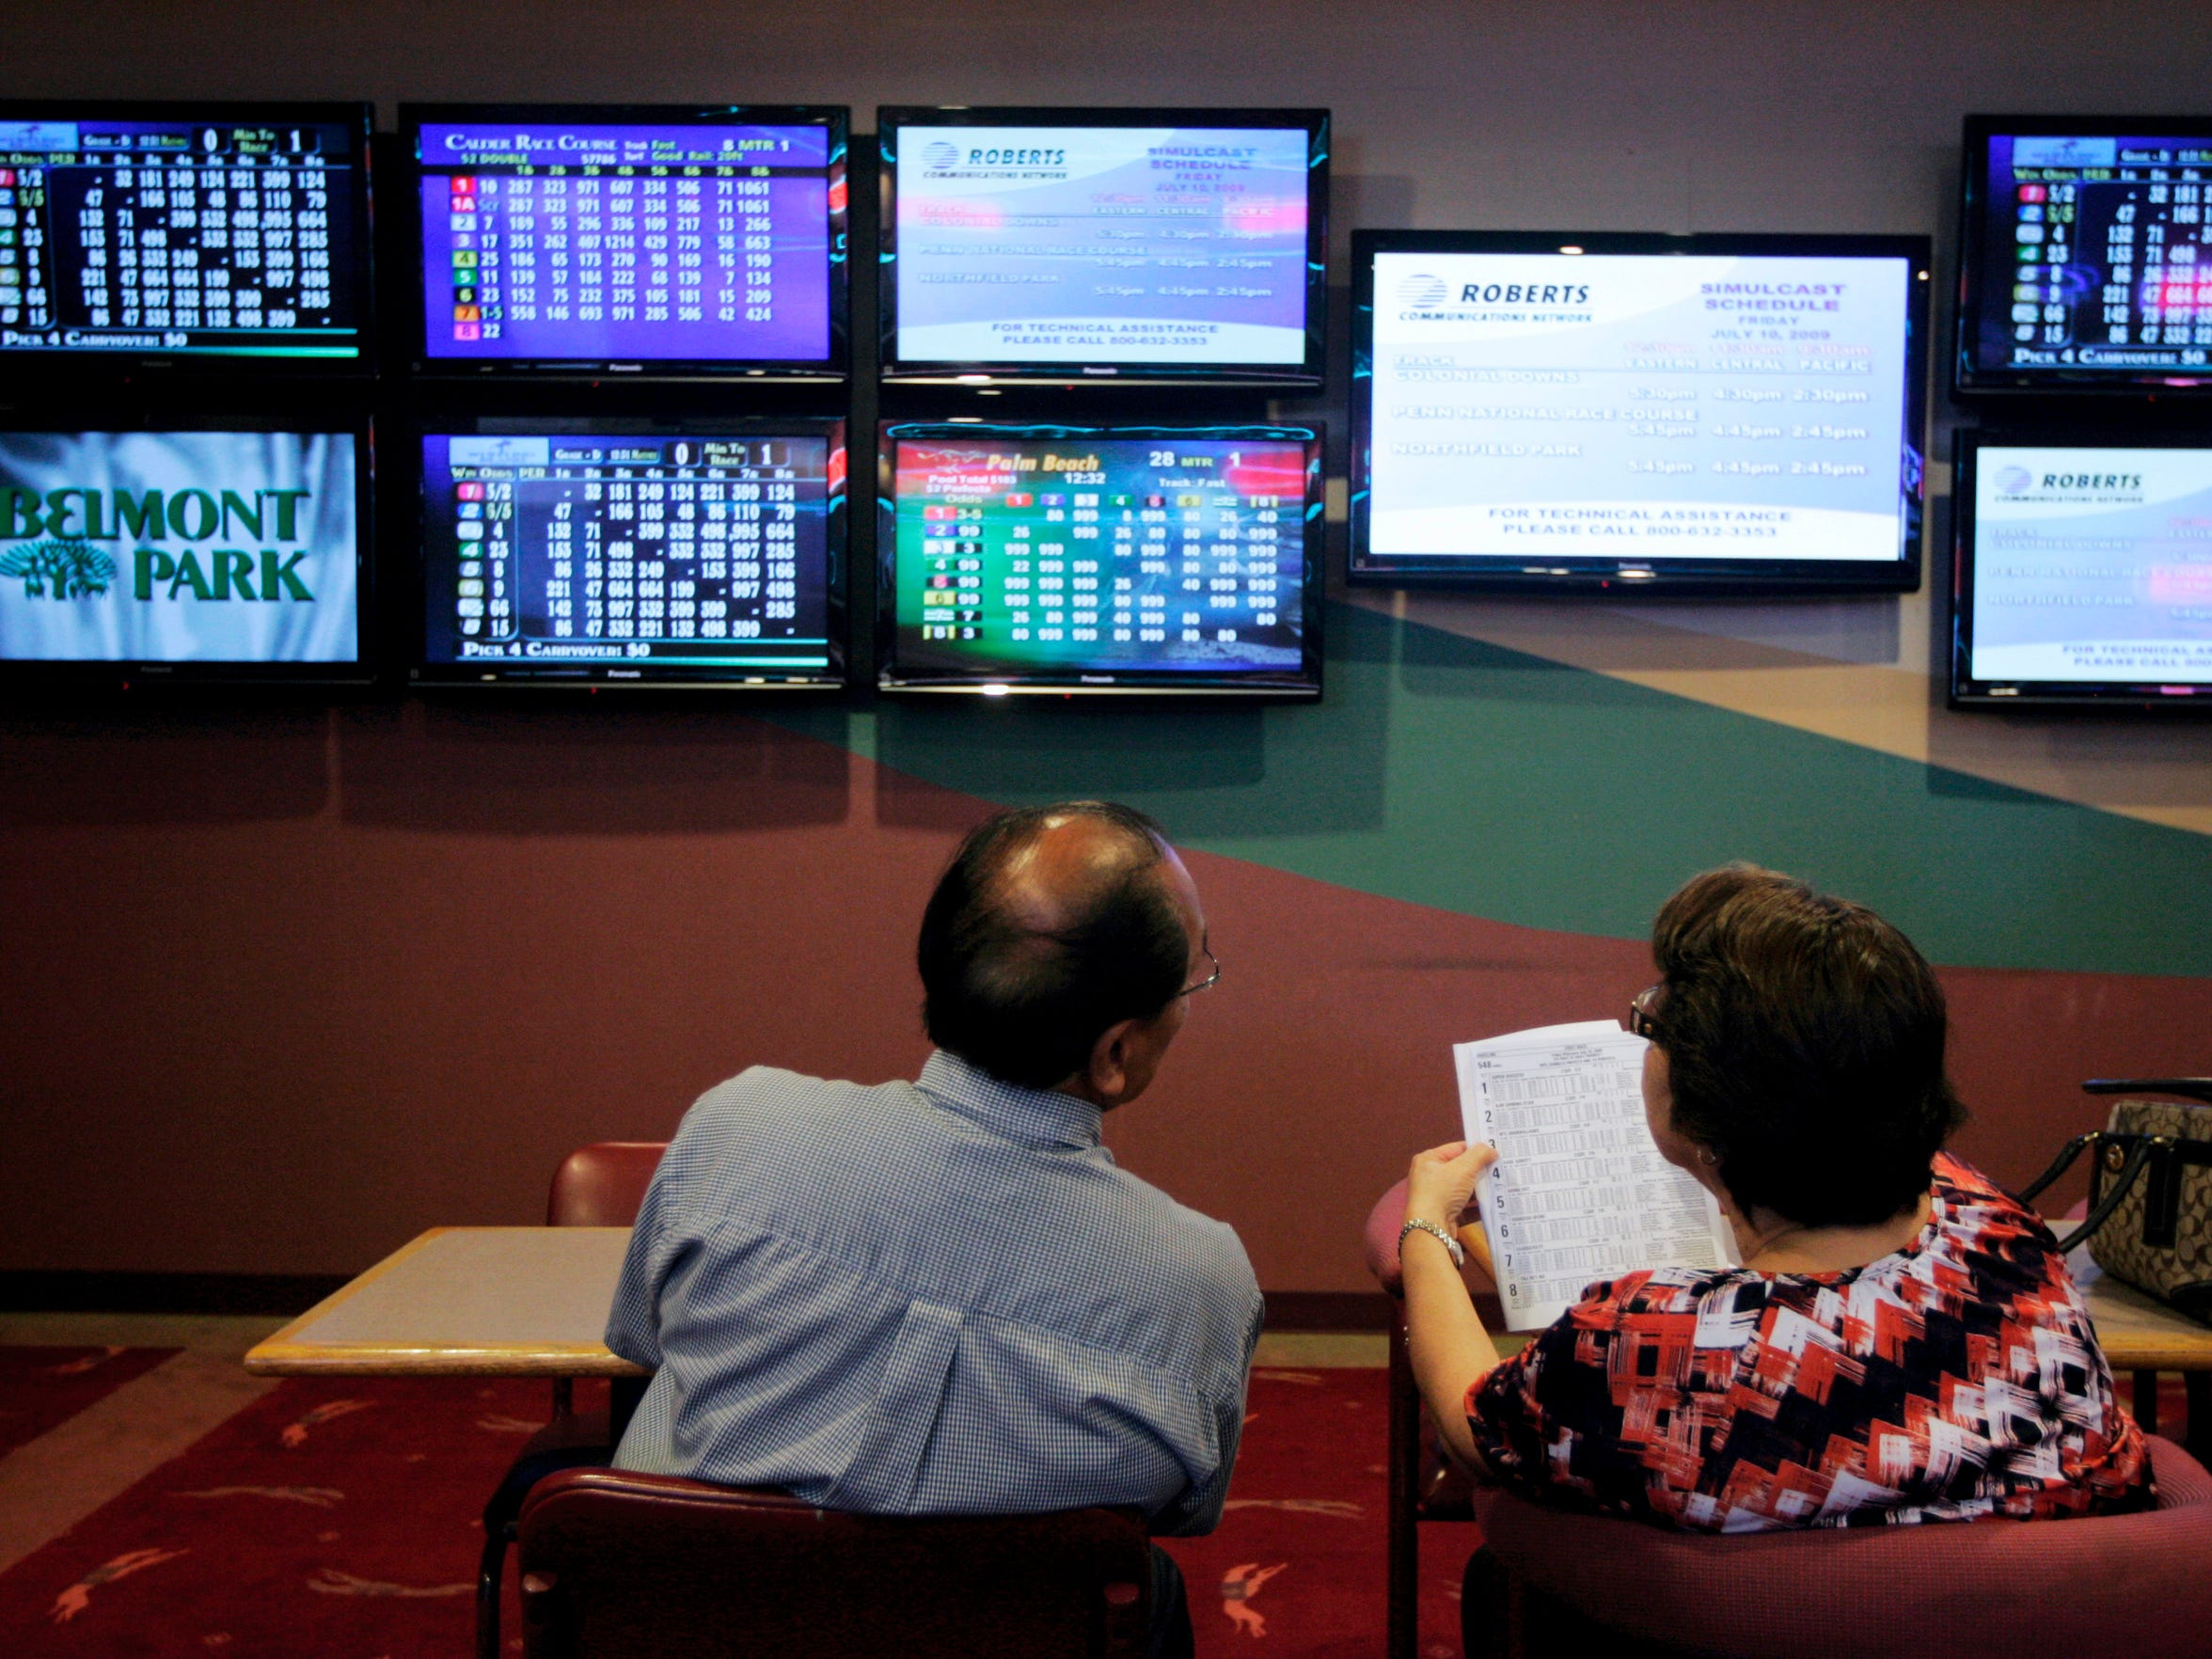 Floro and Mary Ramos look over the racing forms as they watch the races on flat-screen TVs Friday, July 10, 2009 at the Gulf Coast Racetrack in Corpus Christi. Track owners and managers held a ribbon cutting ceremony for the newly reopened facility Friday, where simulcast horse and greyhound betting is available.